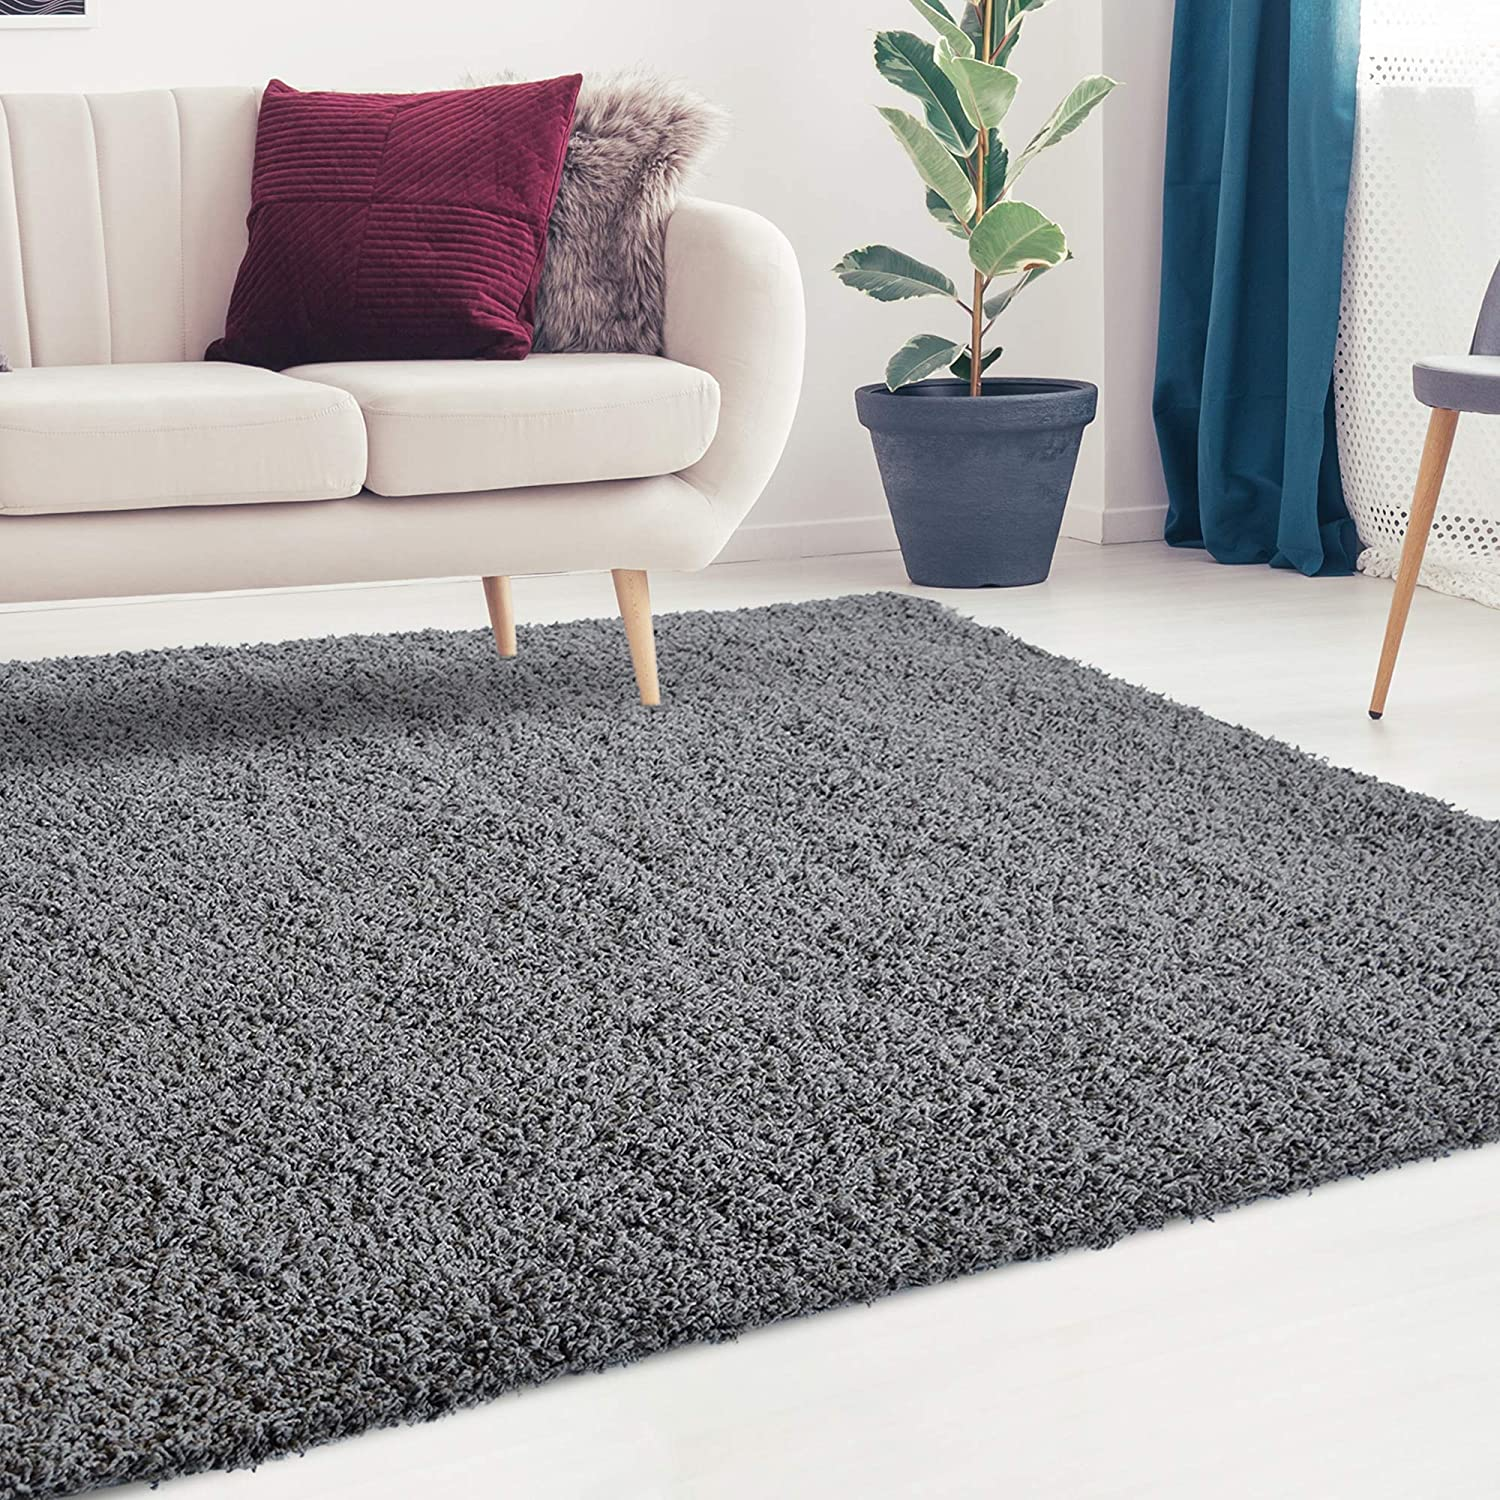 iCustomRug Cozy and Super ! Super beauty product restock quality top! Soft Ranking TOP2 Plush Shag Ideal Rug to Enh Solid